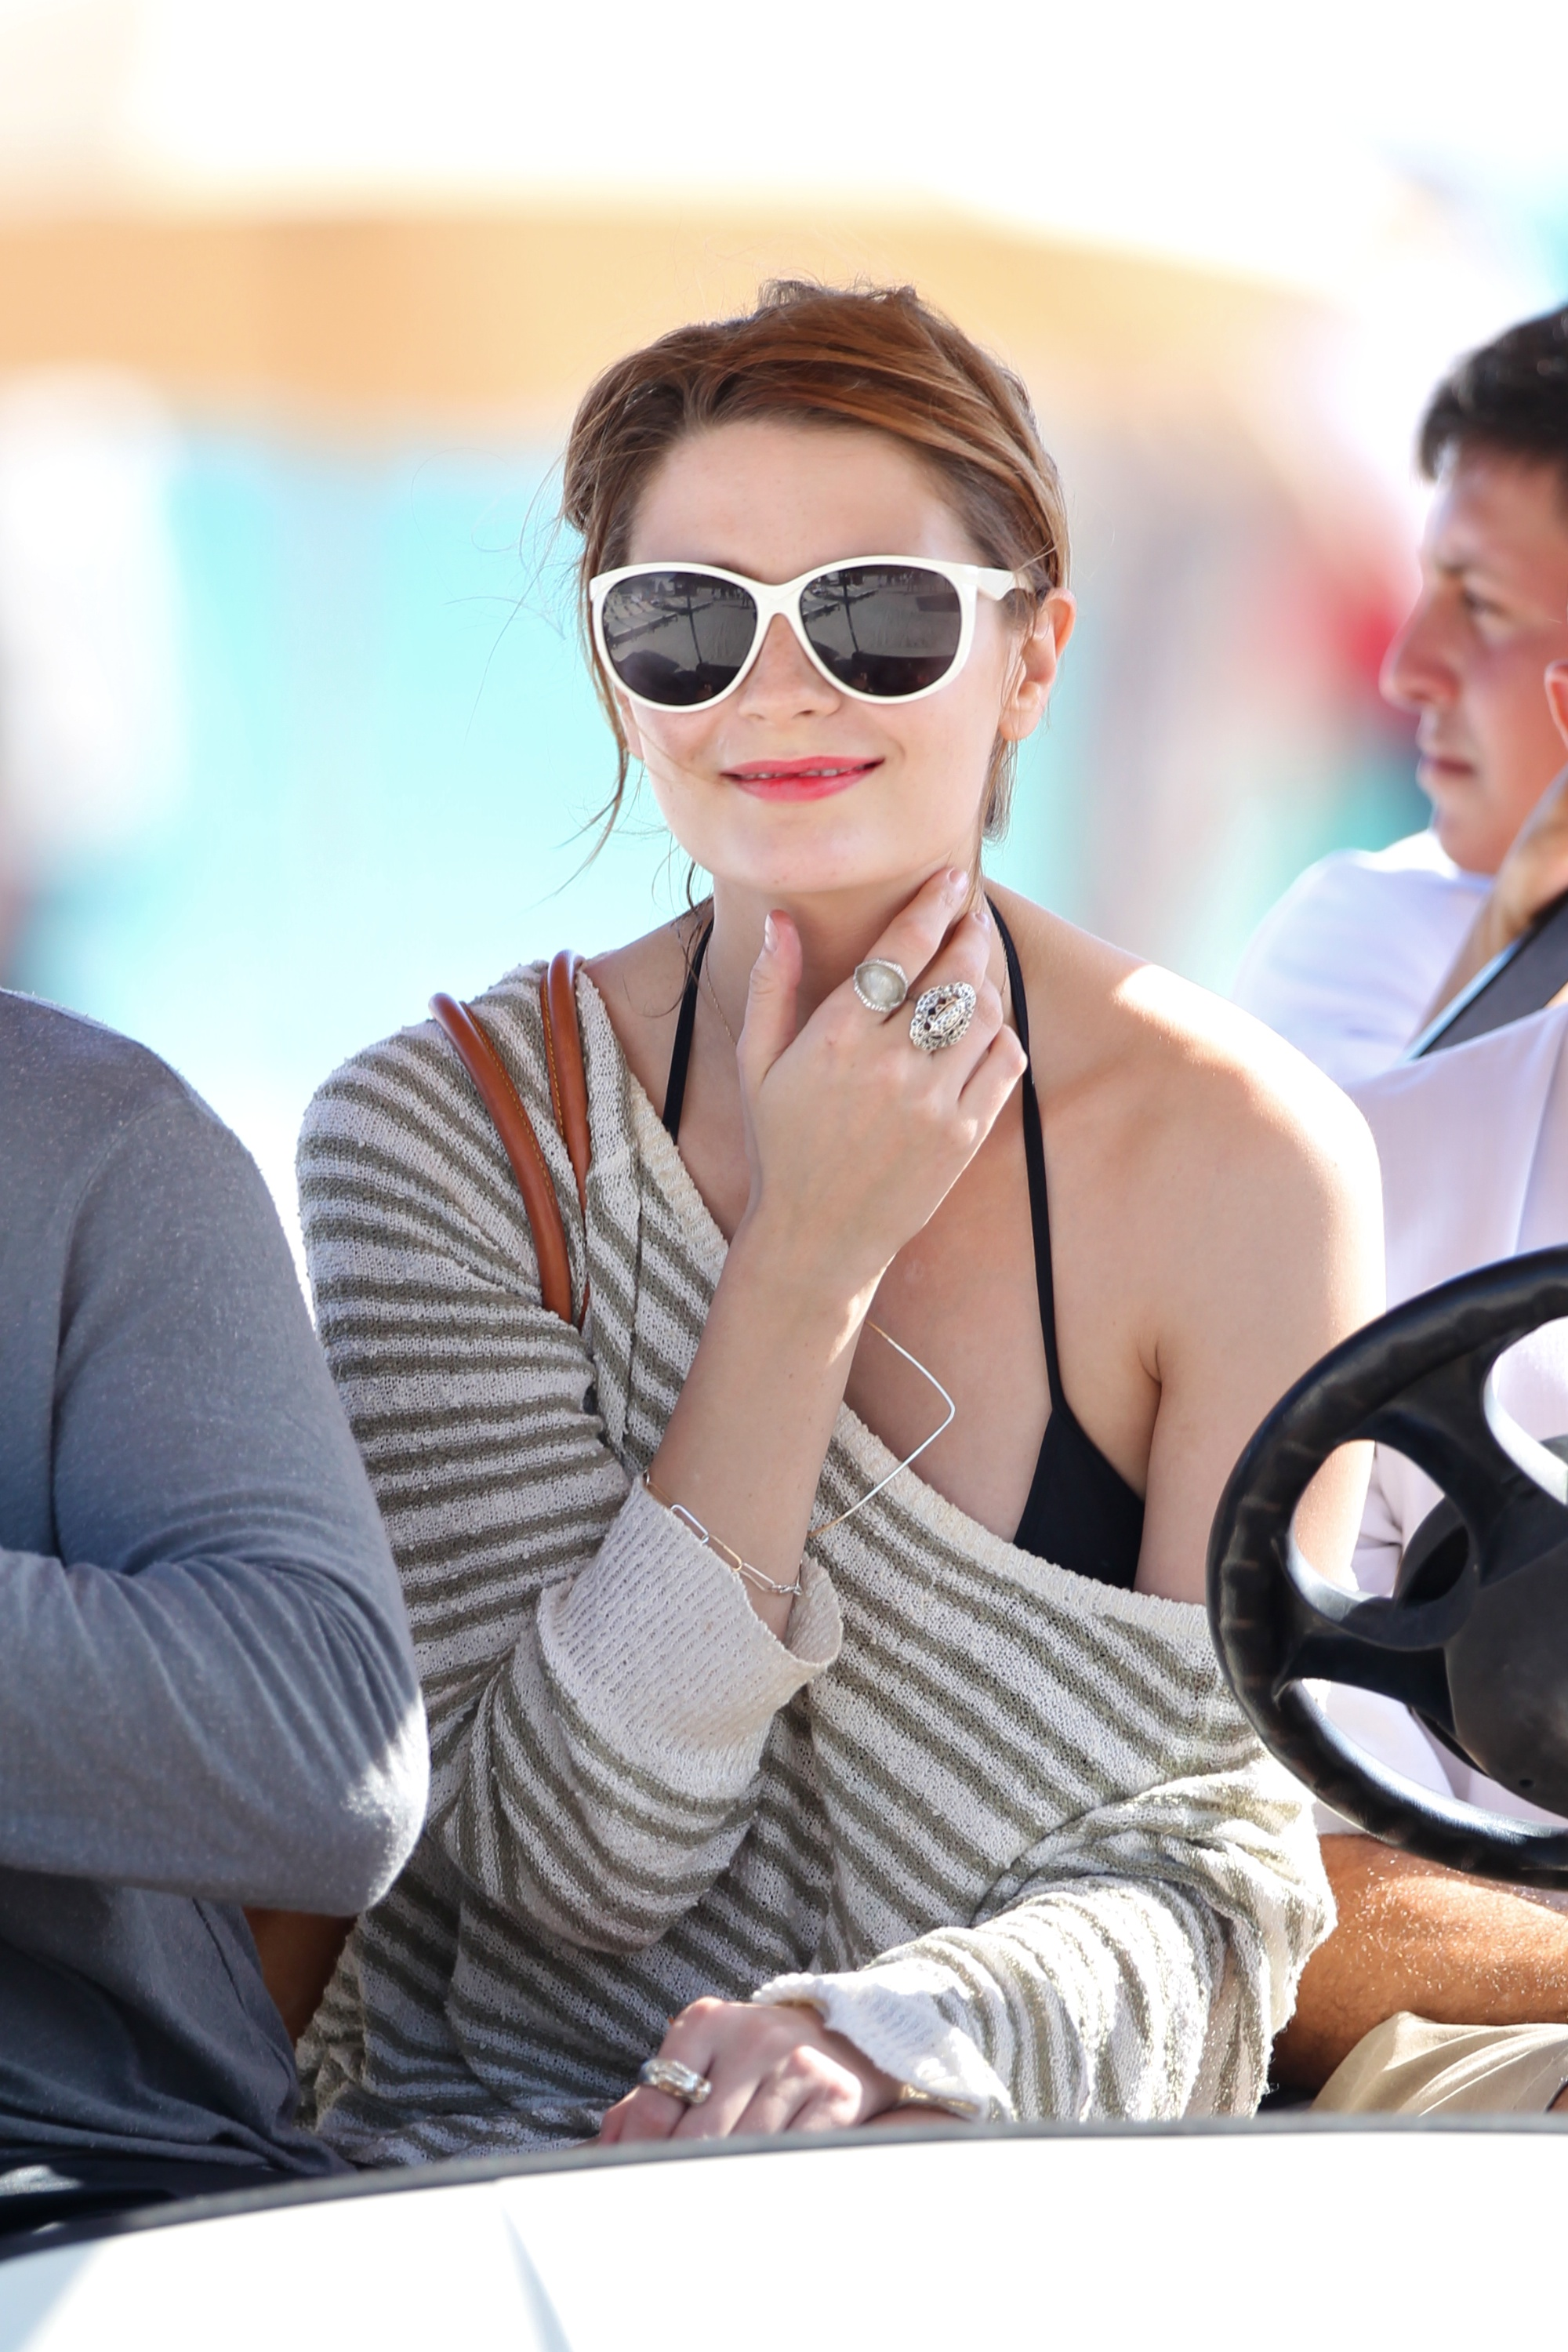 312872902_Mischa_Barton_Bikini_Candids_on_the_Beach_in_Miami_December_27_2011_268_122_53lo.jpg